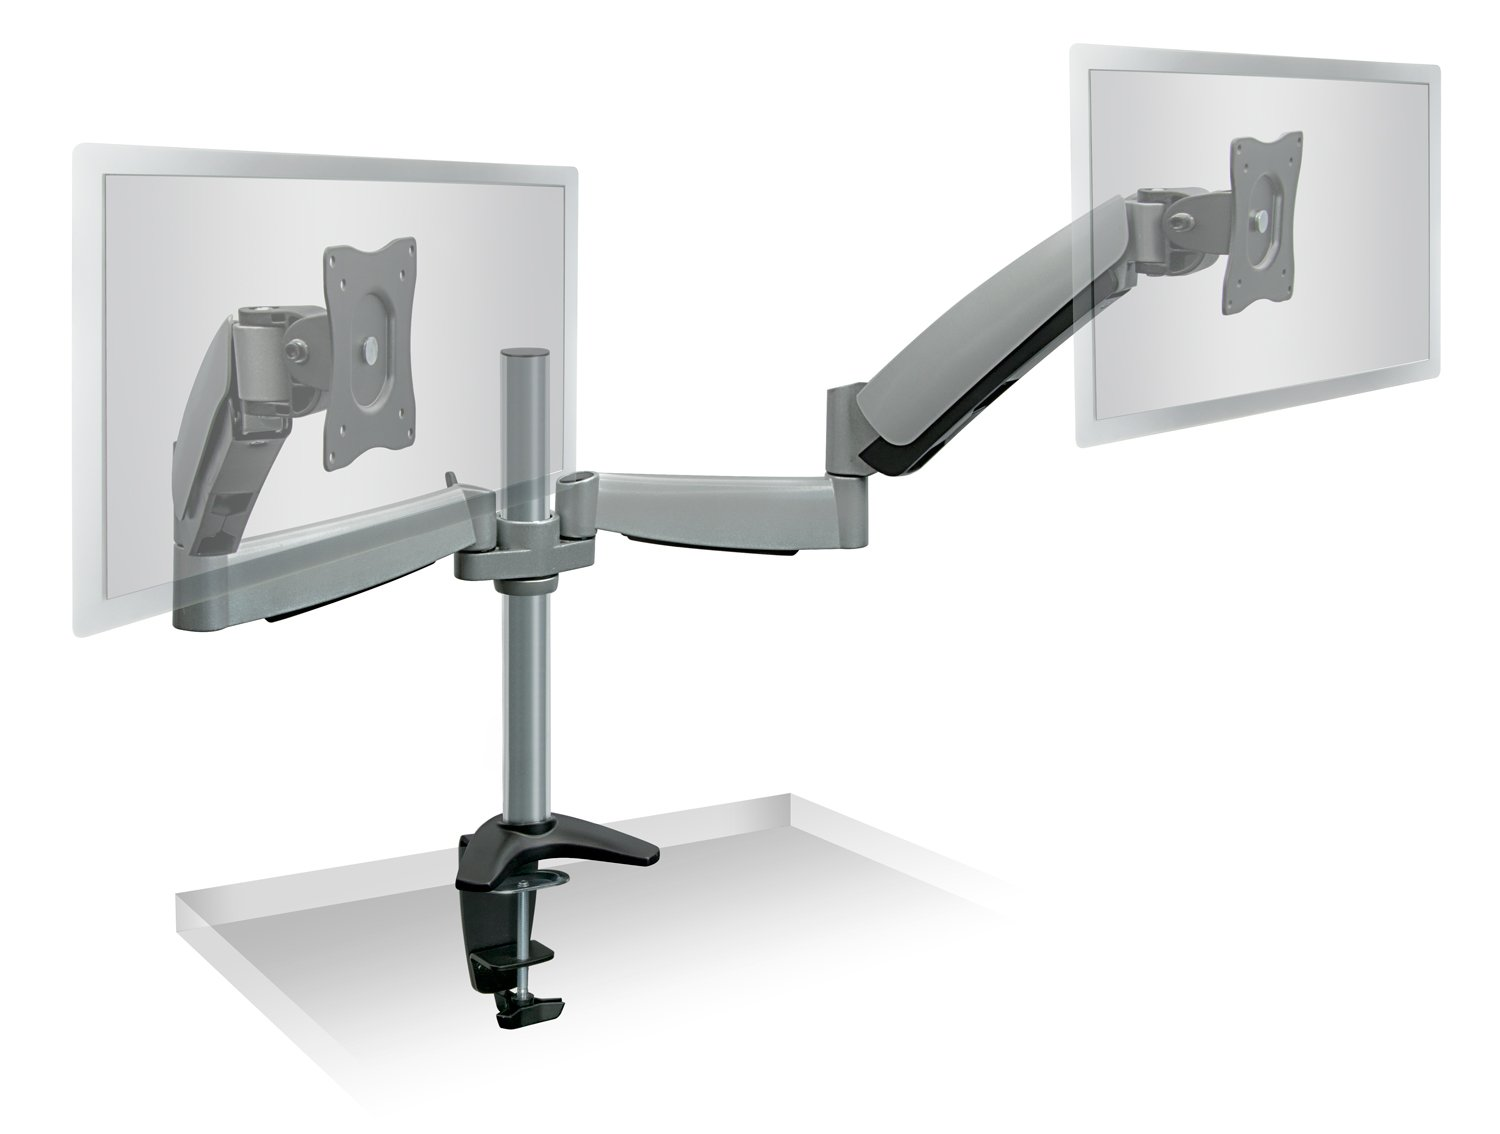 Stupendous Mount It Dual Arm Monitor Mount Dual Monitor Arm Stand Two Full Motion Articulating Adjustable Gas Spring Fits 22 23 24 27 Inch Vesa Compatible Download Free Architecture Designs Xoliawazosbritishbridgeorg